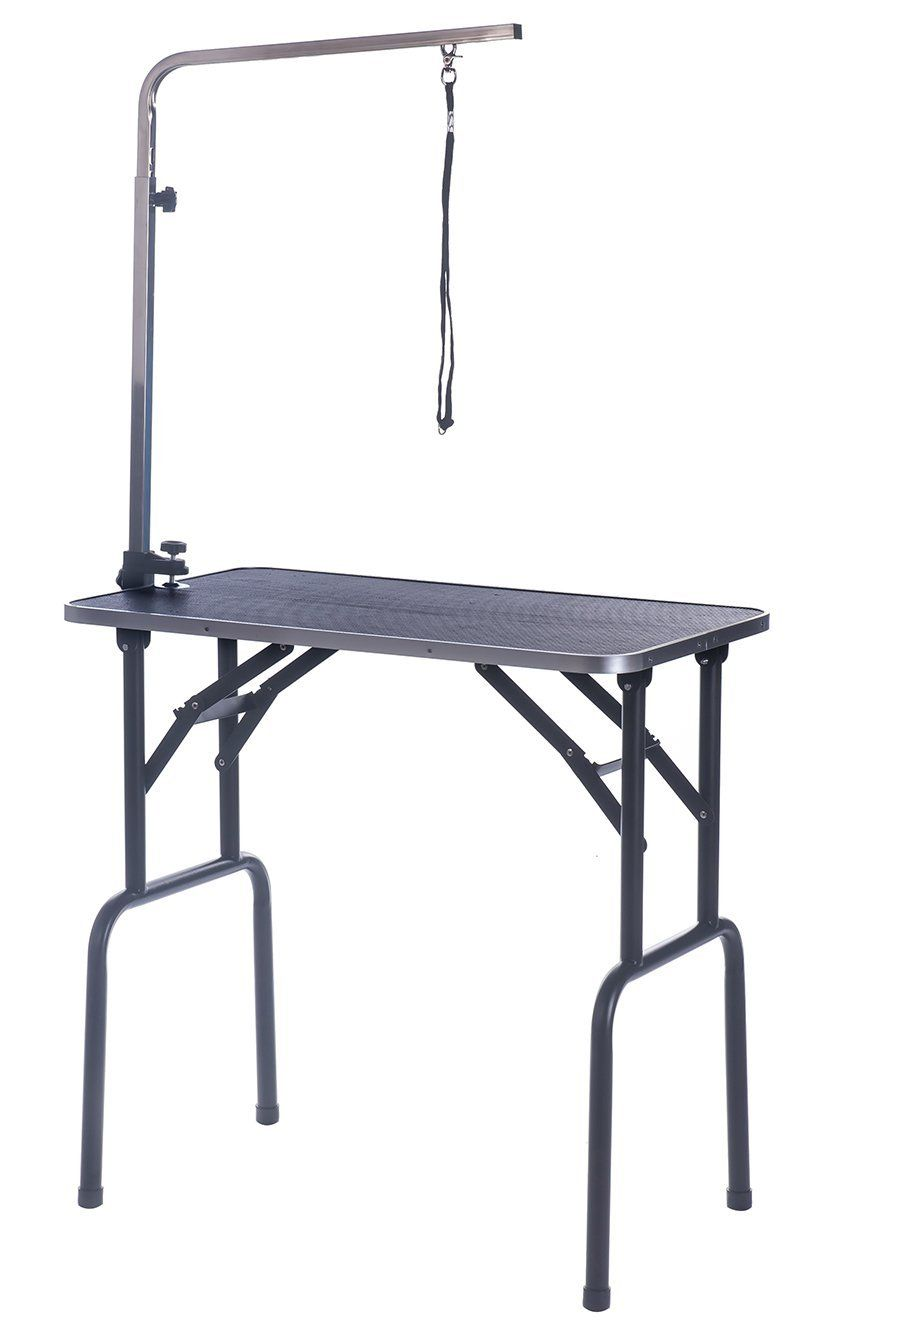 Cat Dog Grooming Table With Adjustable Arm 36 Inch For More Information Visit Now This Is An Amazon Affiliate Link Dog Grooming Cat Grooming Pets Cats